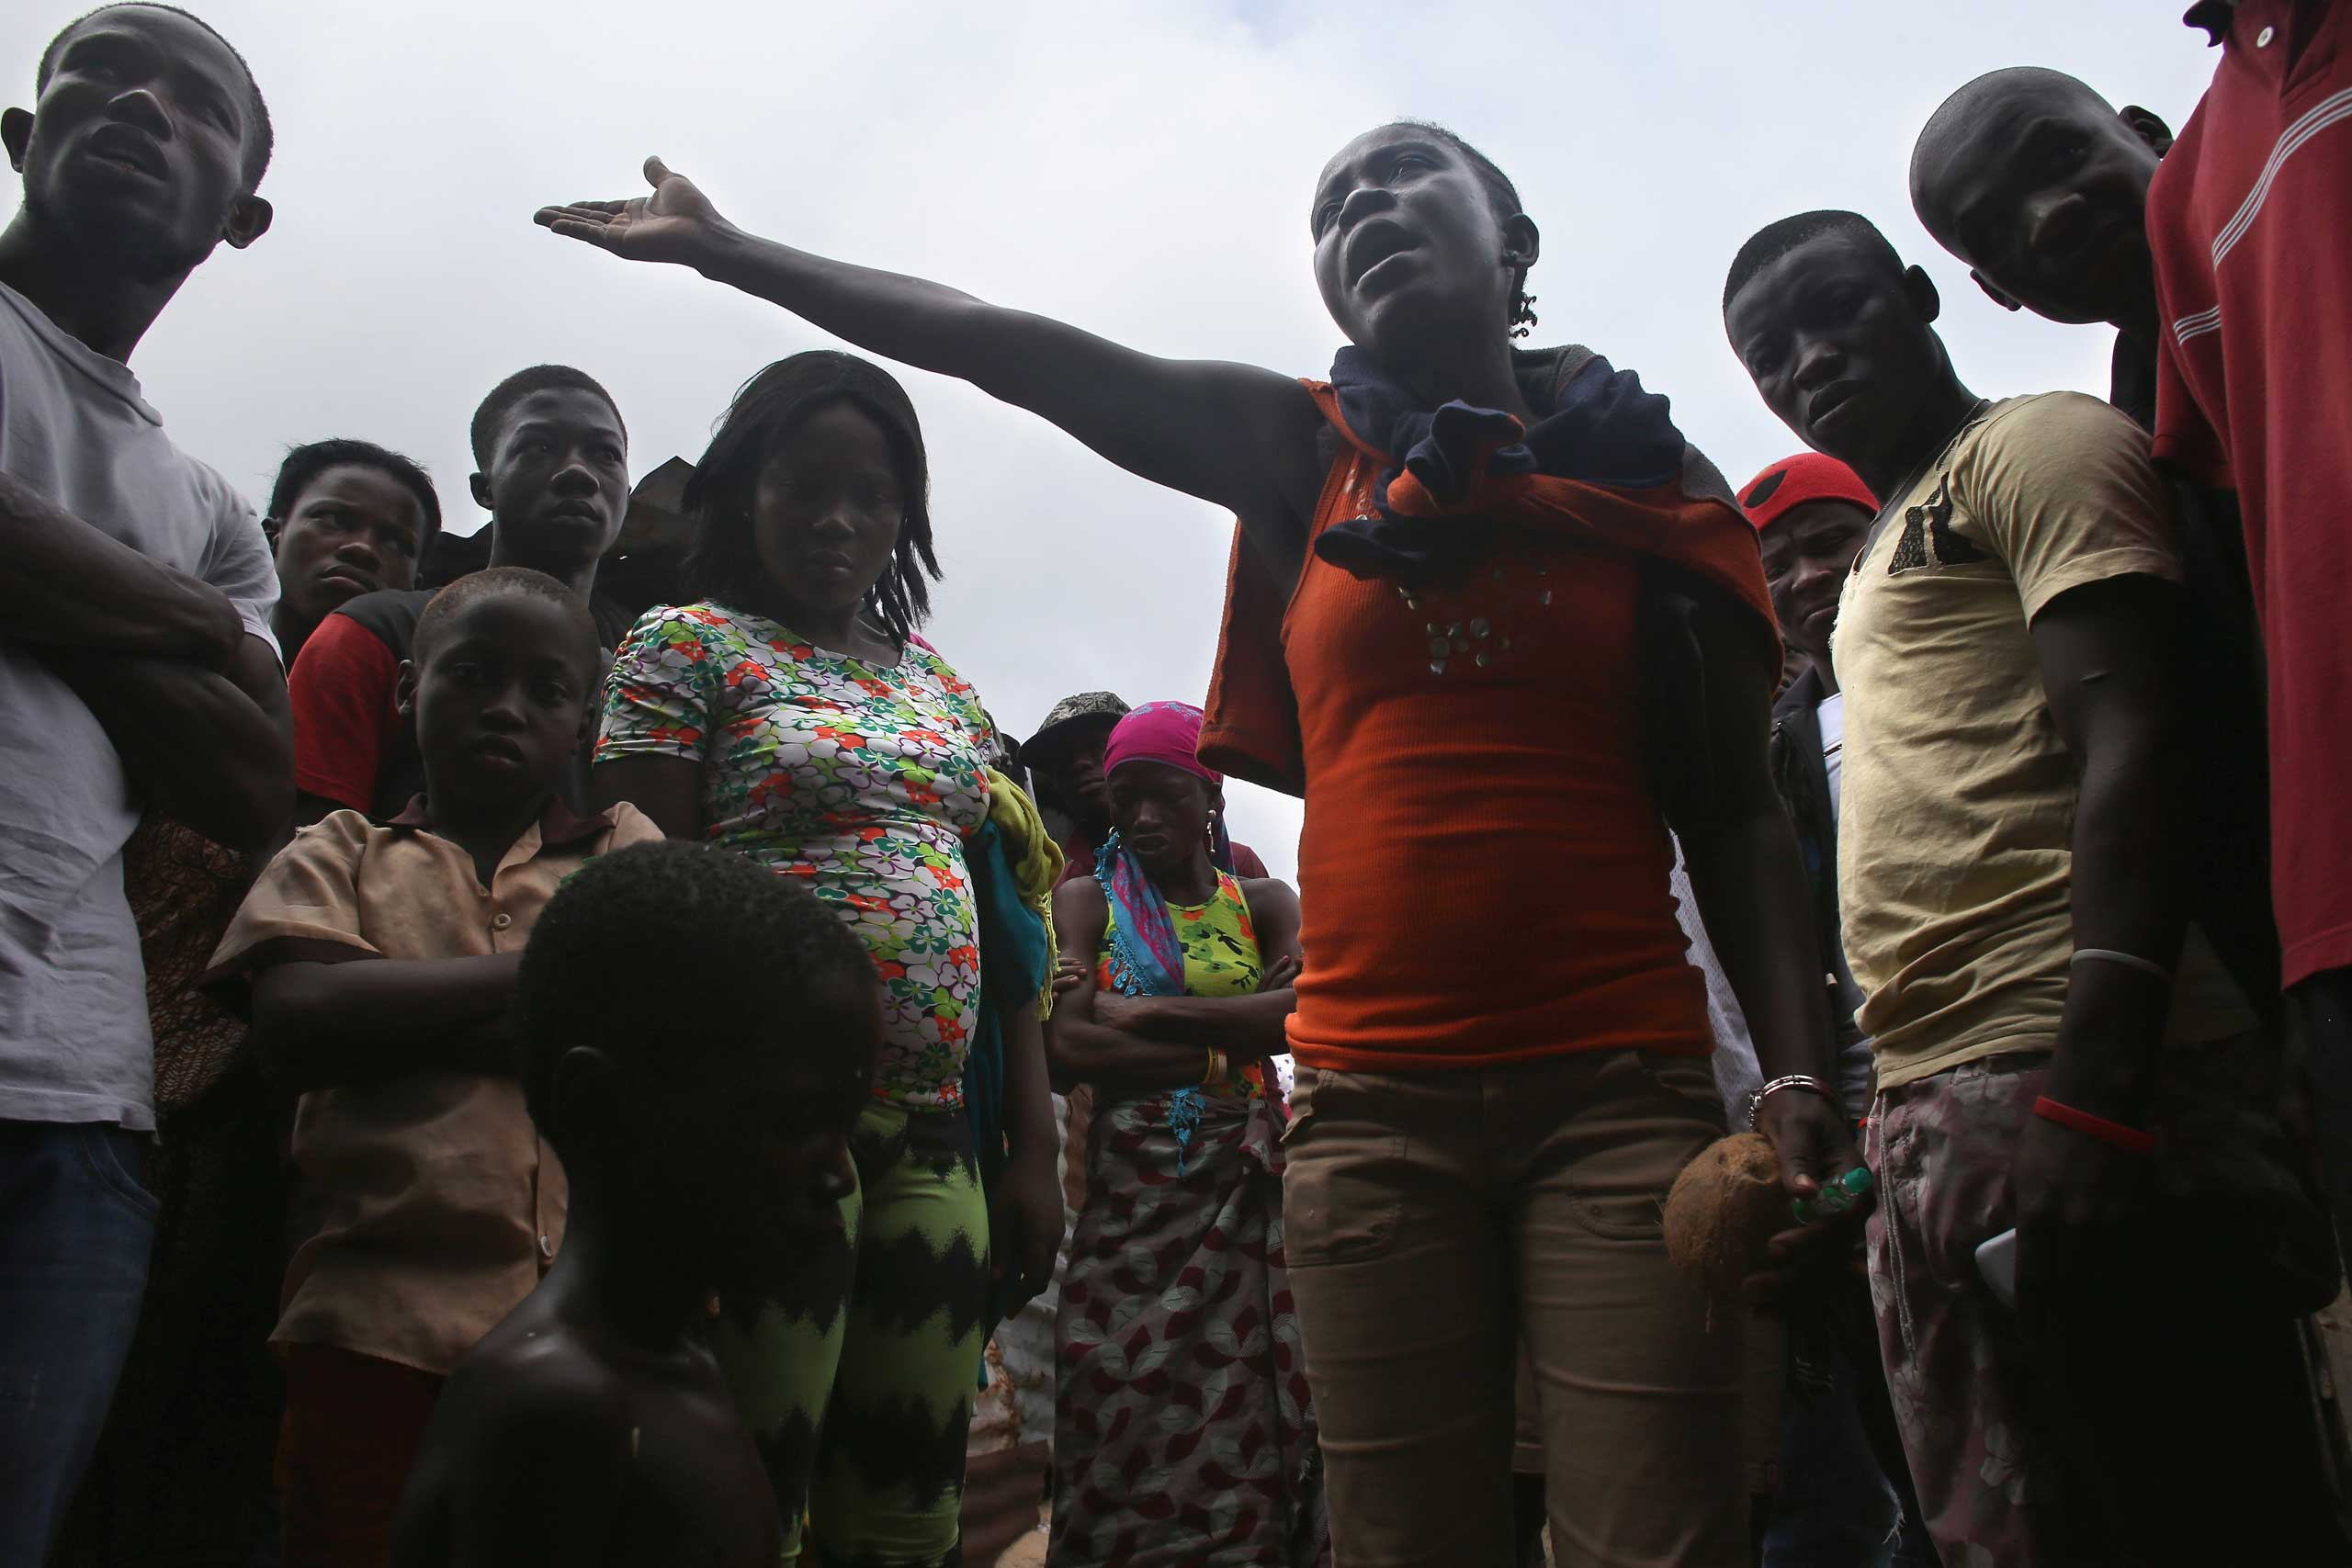 Local residents discuss how to help a very sick boy, 10, in a back alley of the West Point slum in Monrovia on Aug. 19, 2014. The boy was one of the patients who was pulled out of a holding center for suspected Ebola patients when the facility was overrun by a mob on Saturday.